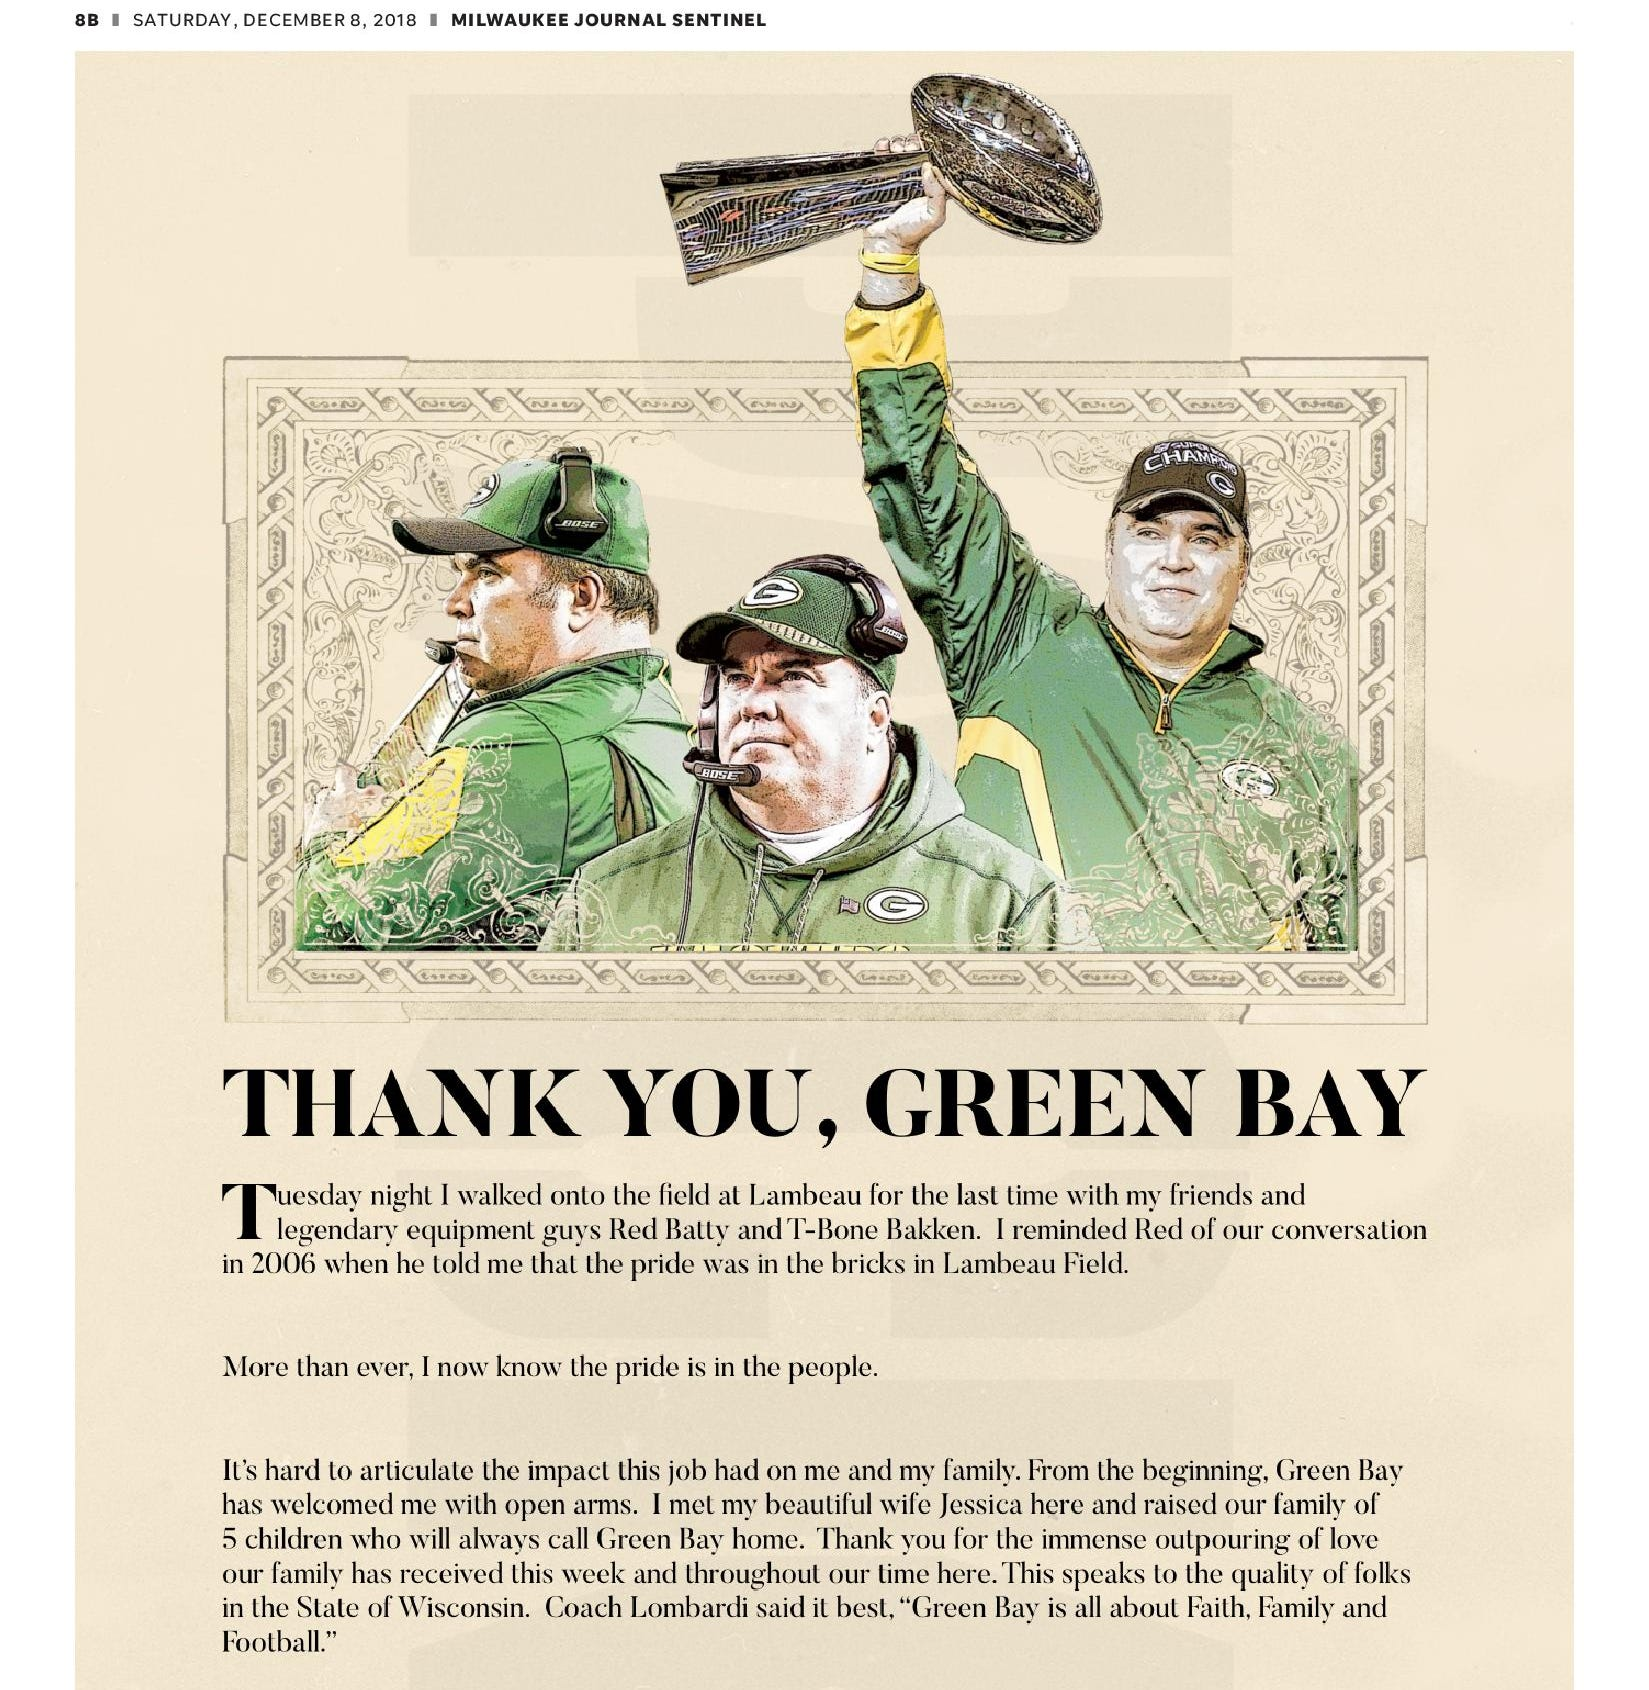 Mike McCarthy takes out a full-page ad to show his appreciation for the Green Bay faithful